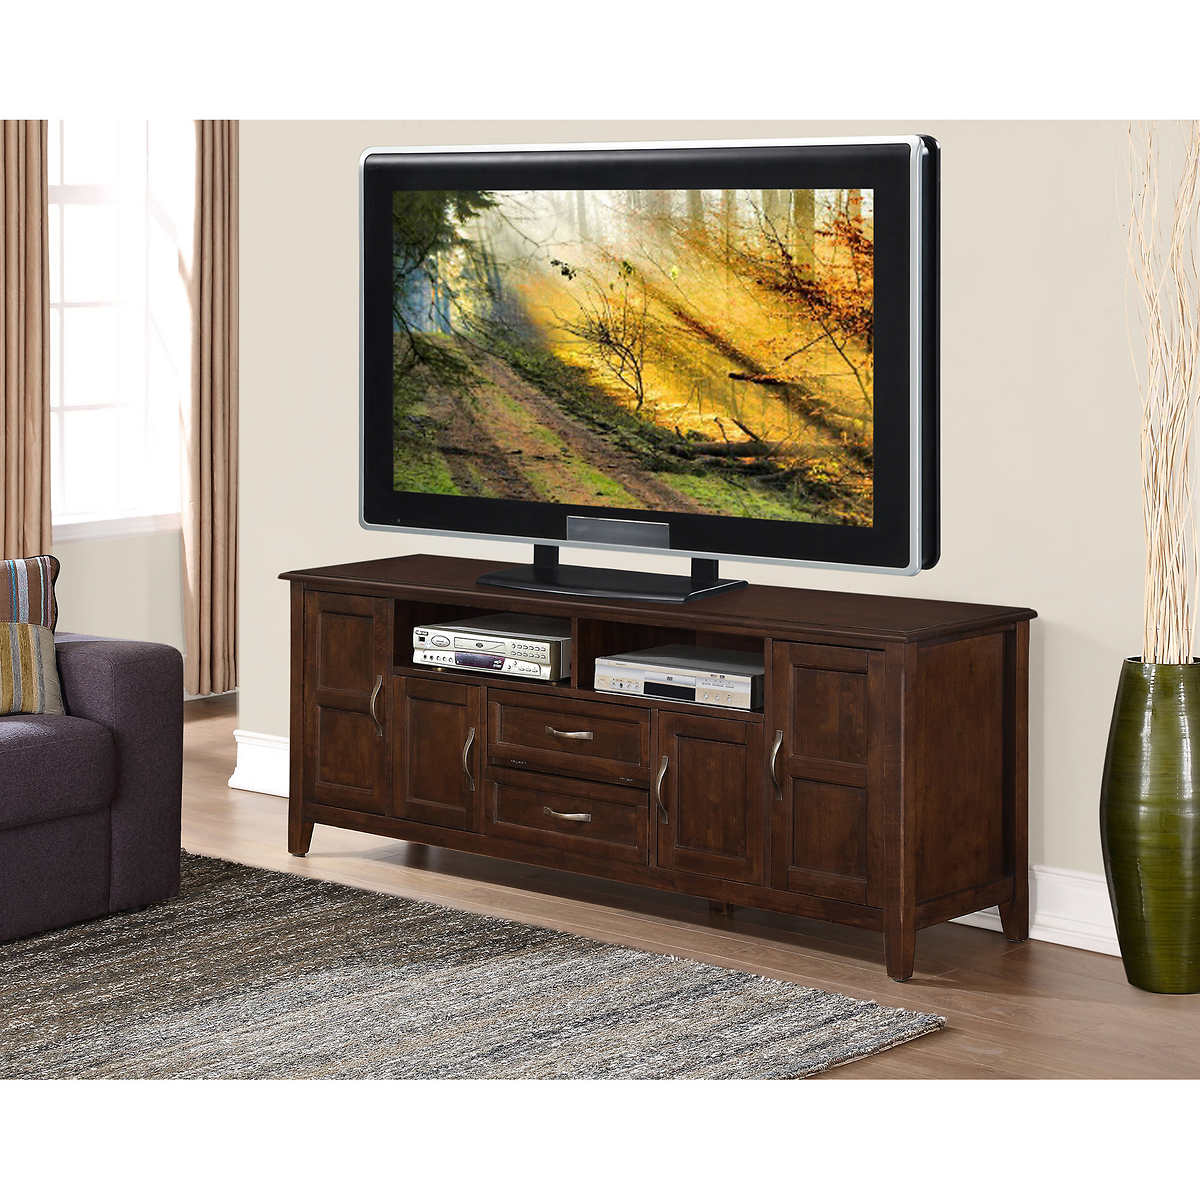 Tech craft tv stands - Television Stand